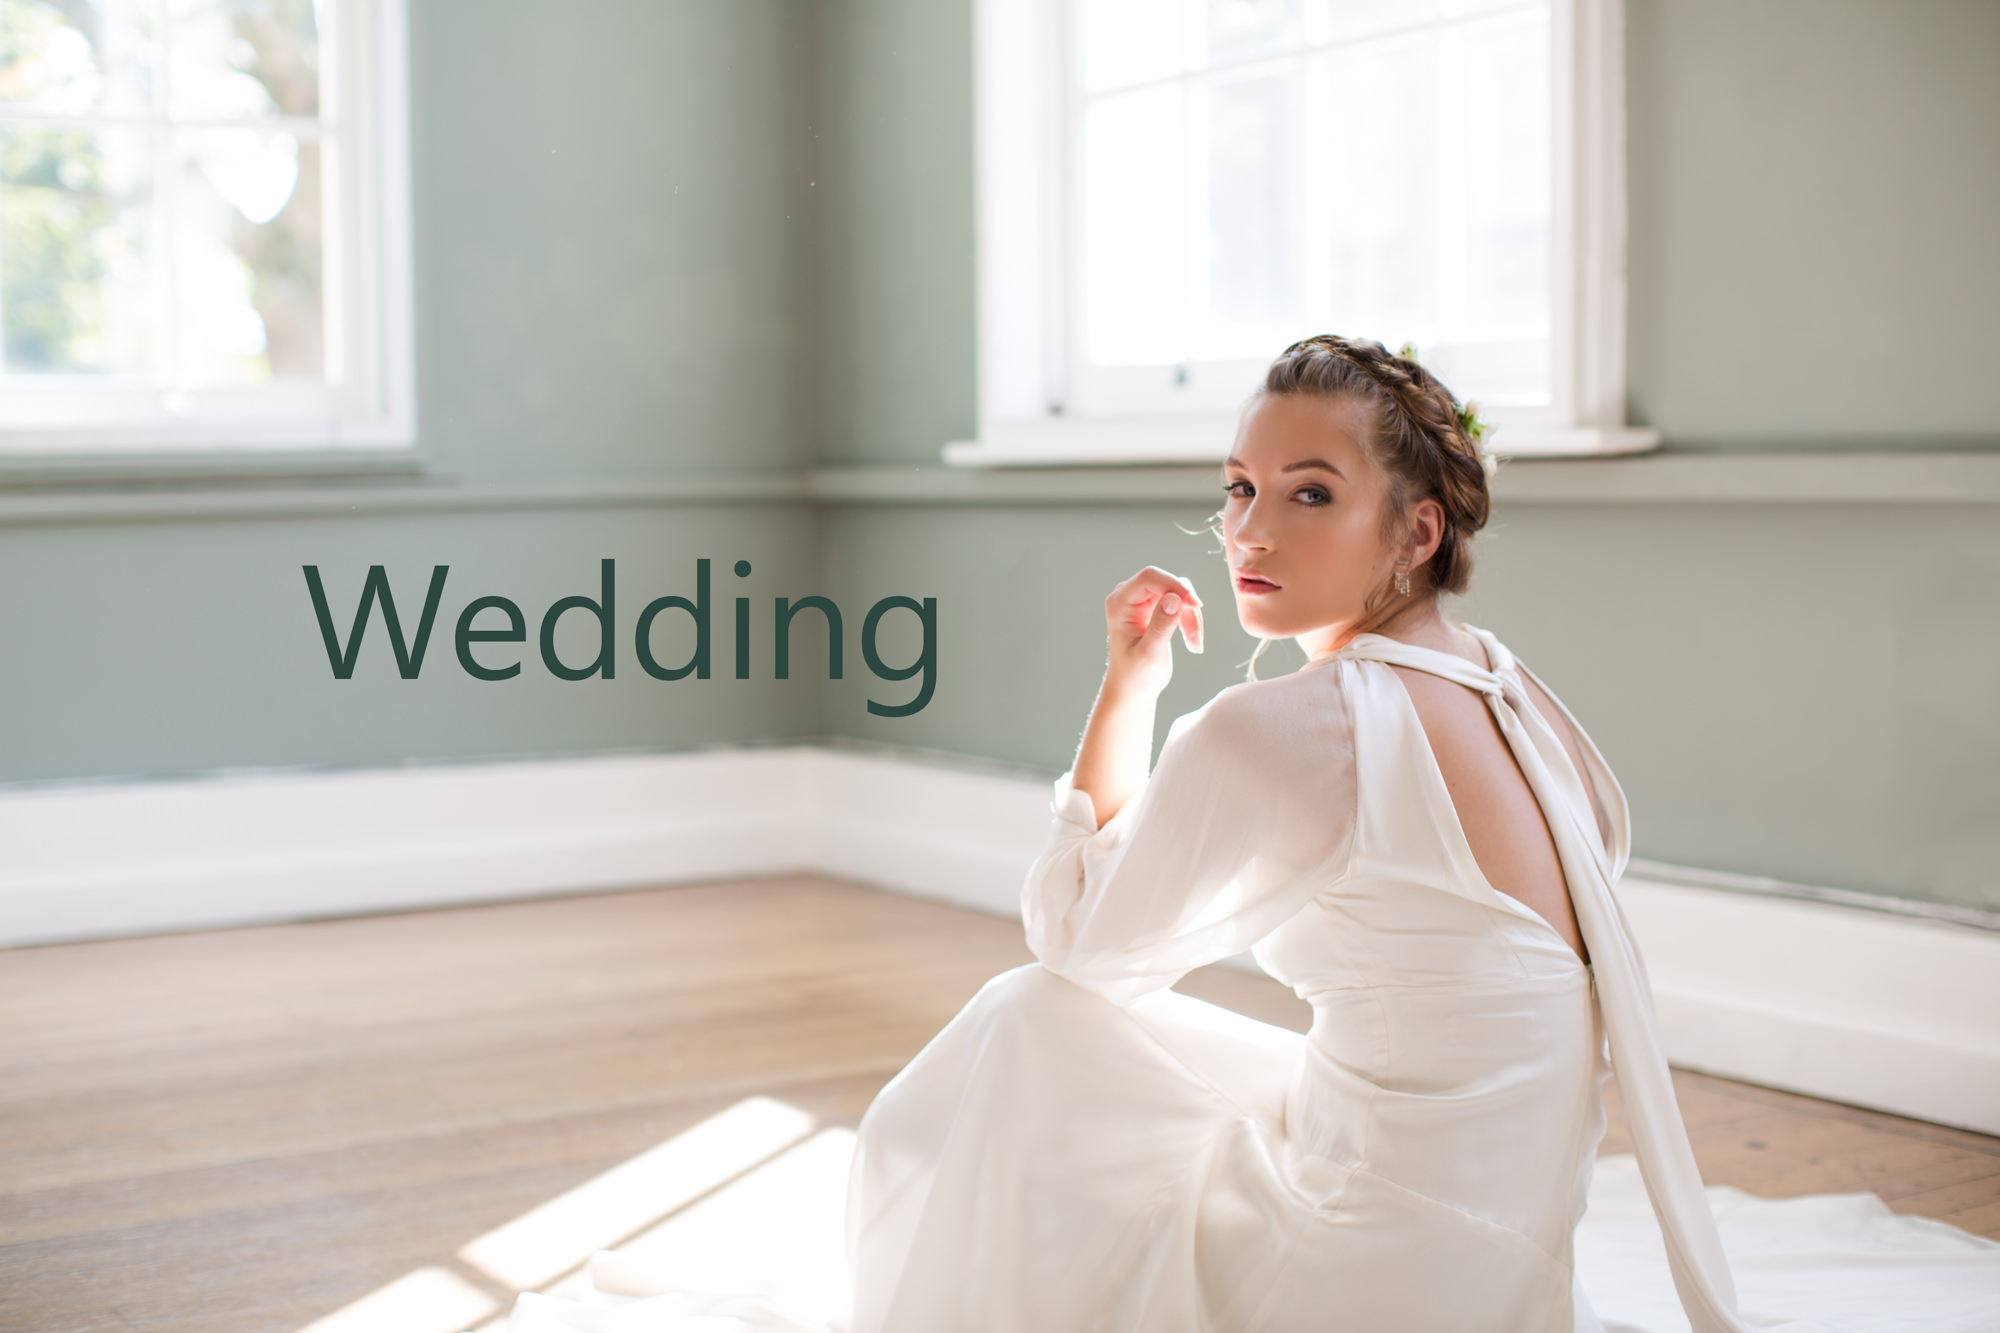 Wedding, Engagement and Pre-Wedding Photography in London